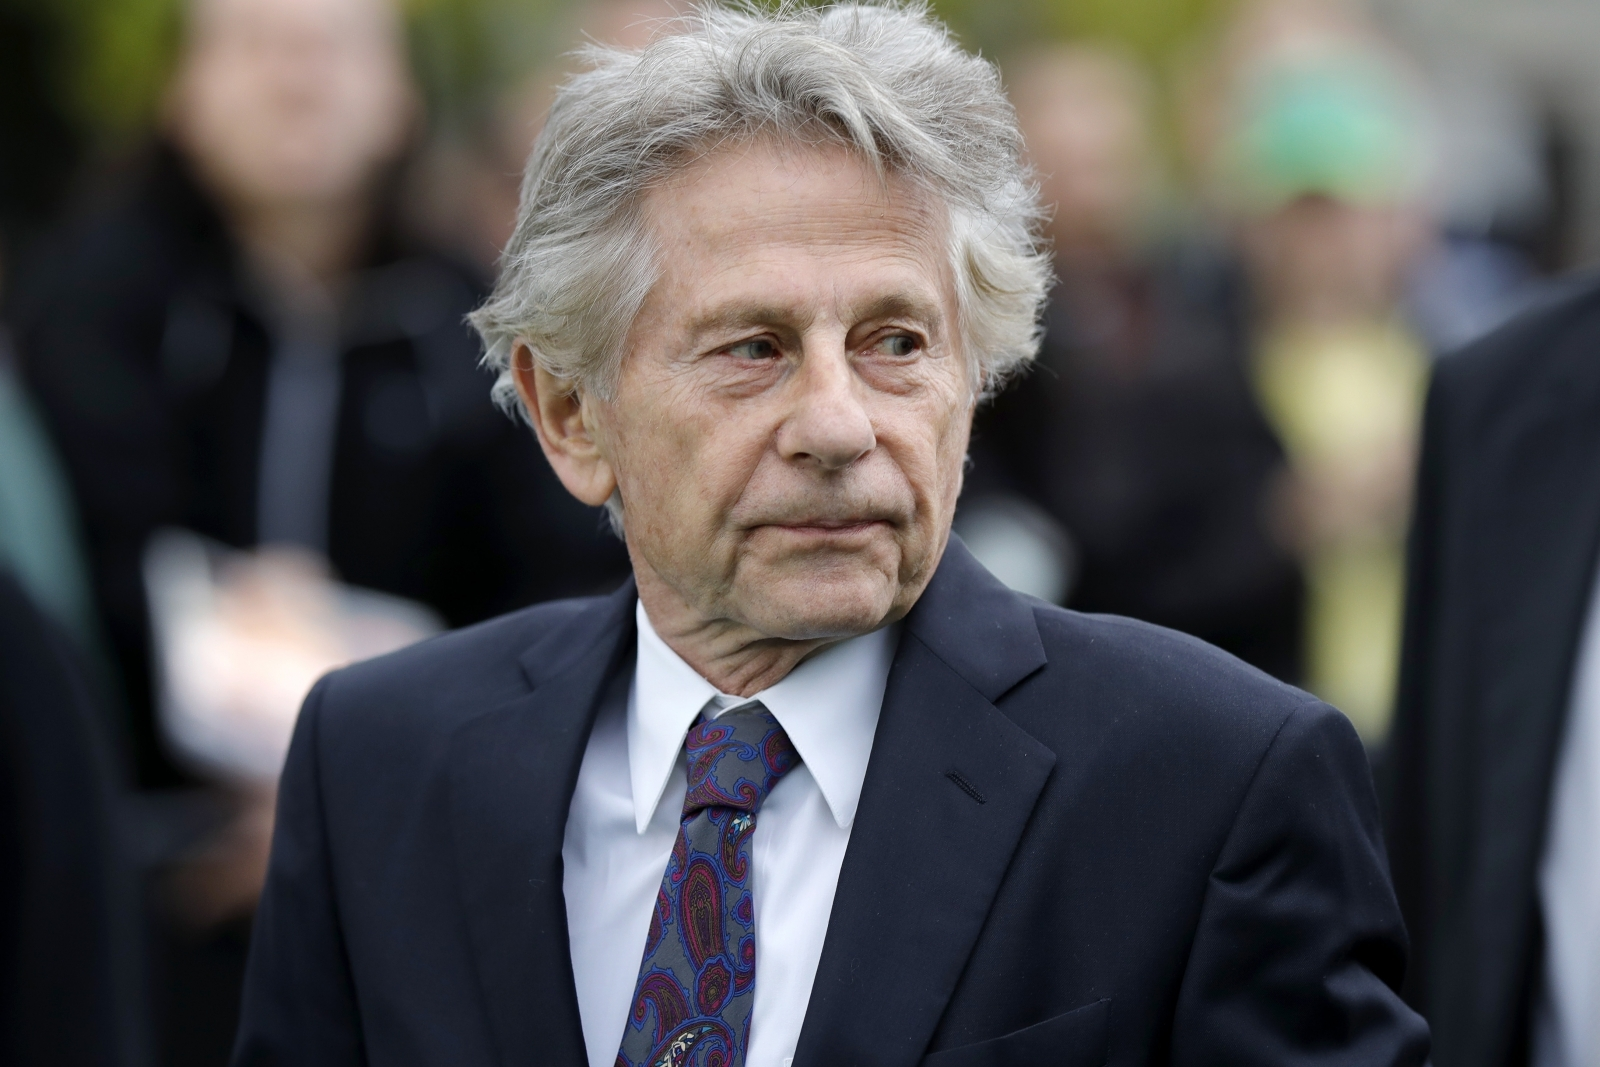 Roman Polanski will face protests when a retrospective of the controversial film director's work opens in Paris today